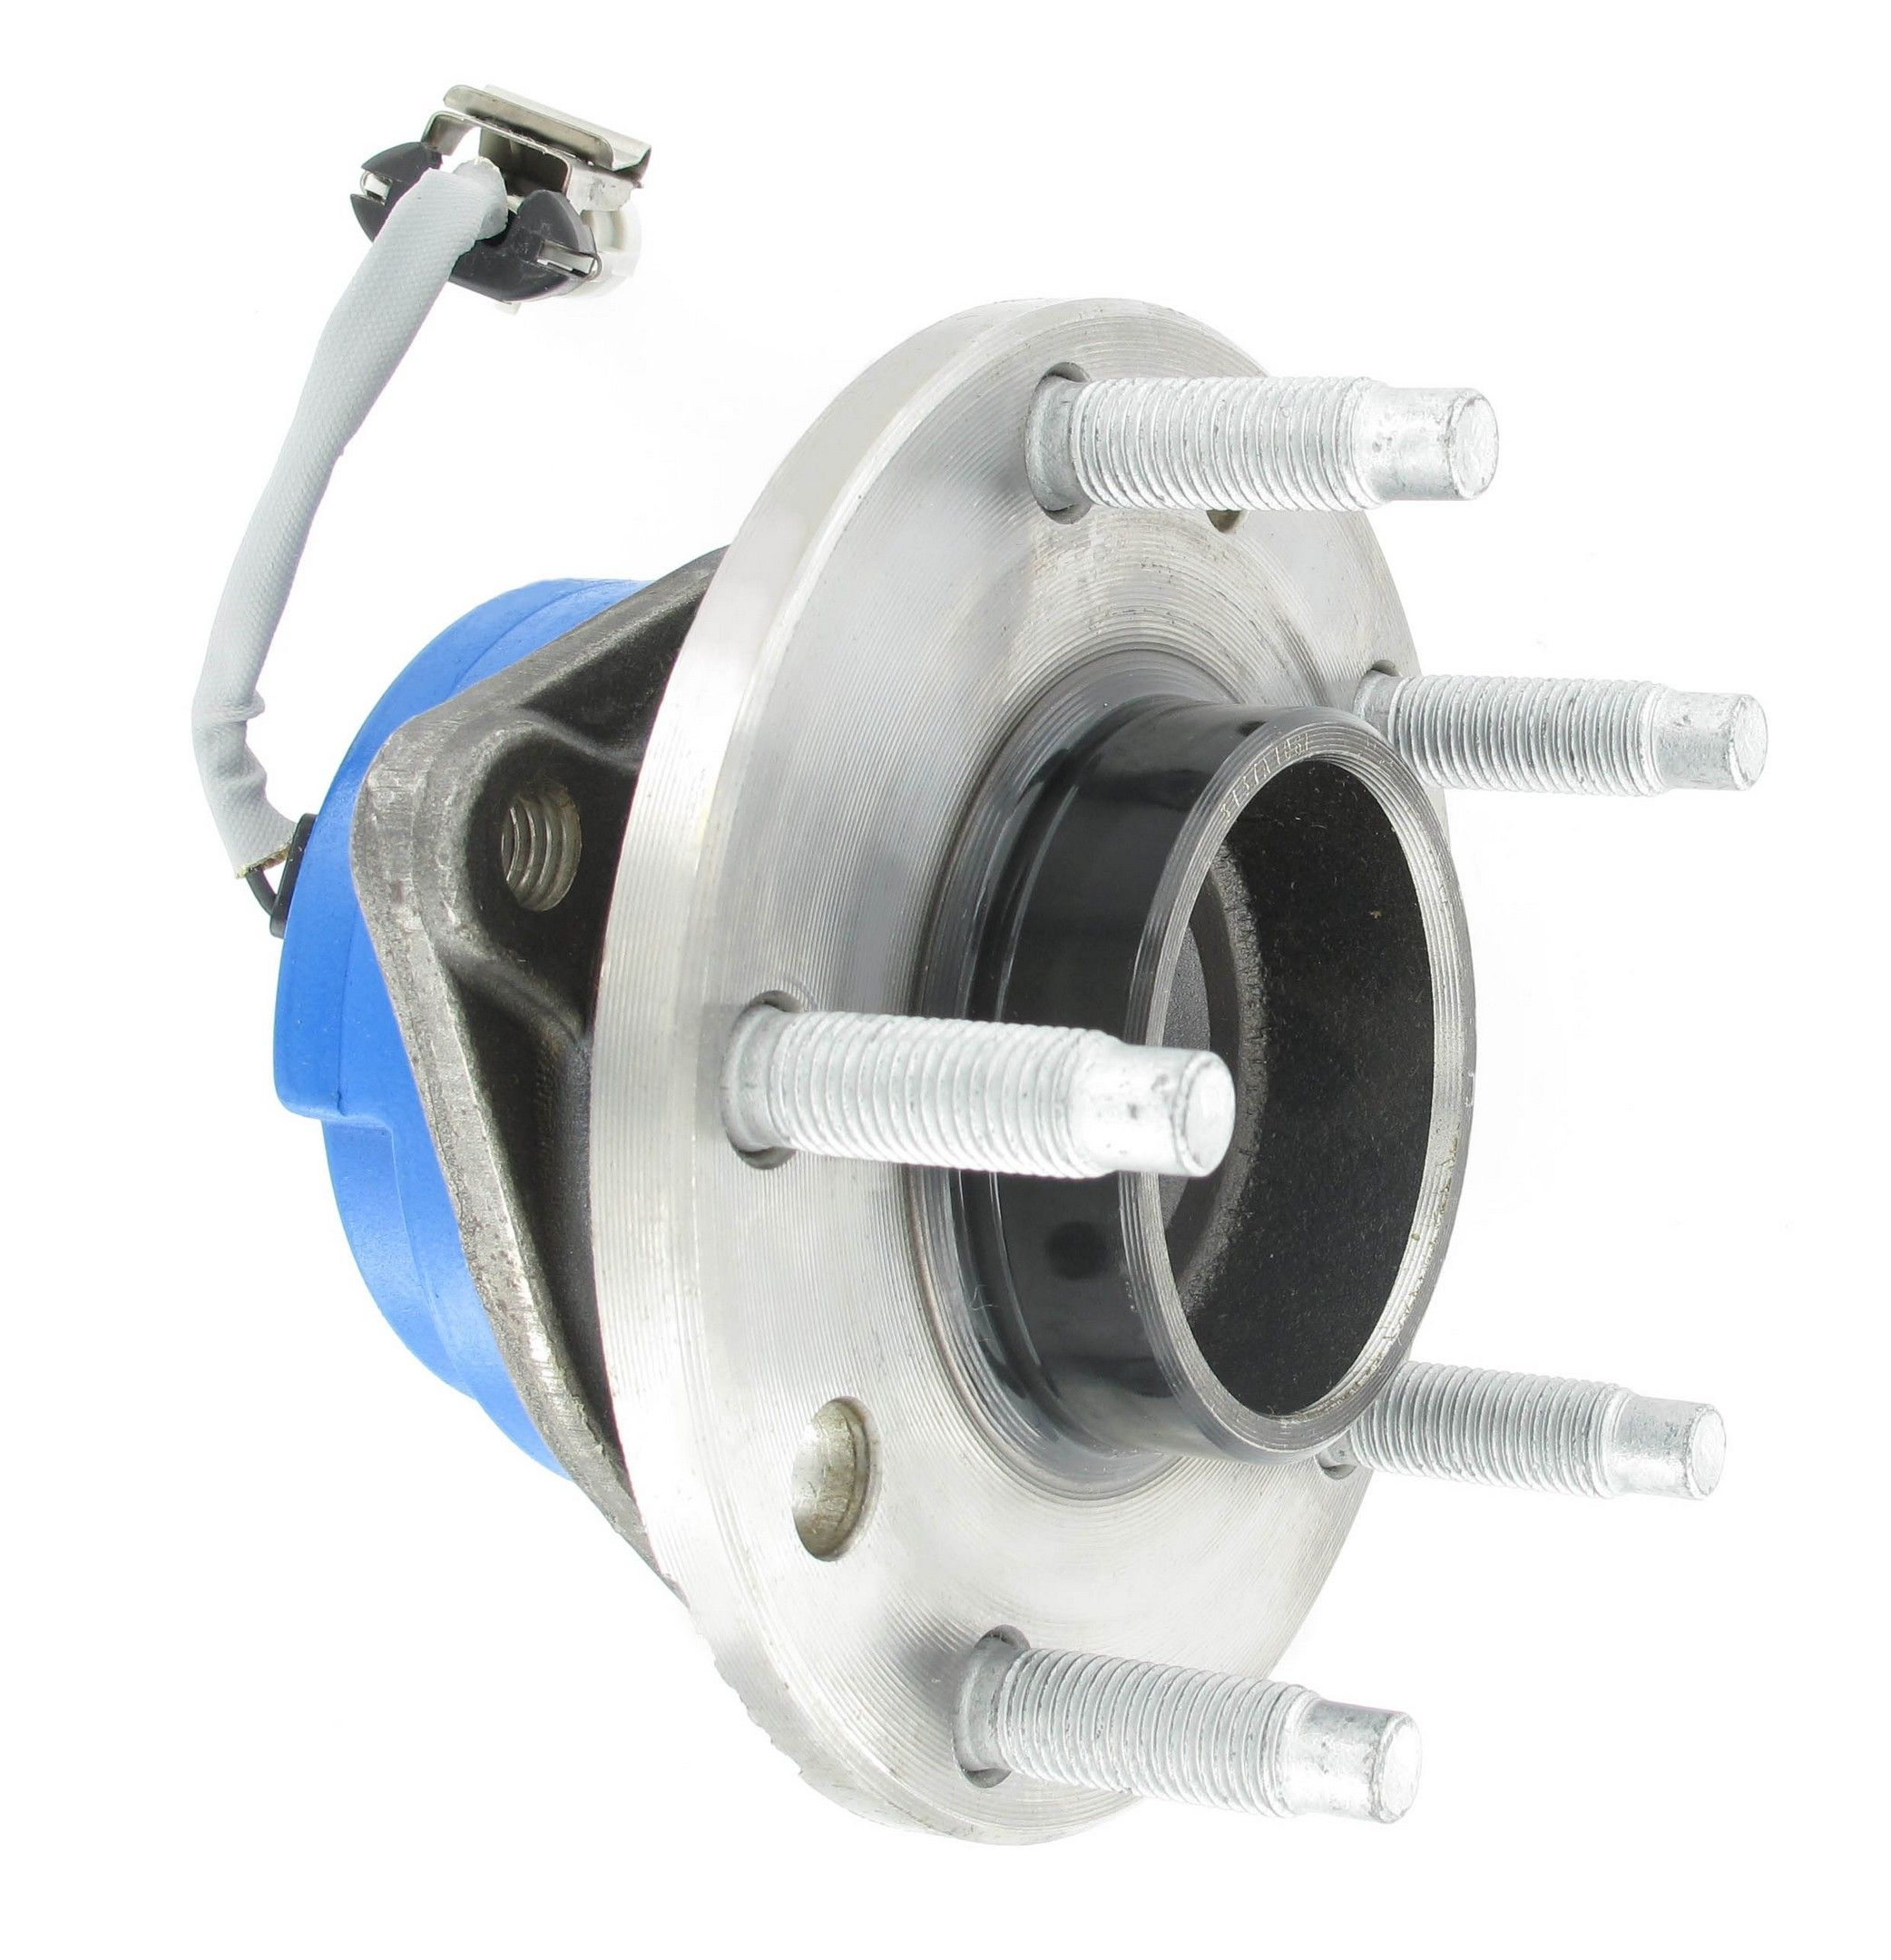 Chevrolet Corvette Wheel Bearing and Hub Assembly Replacement